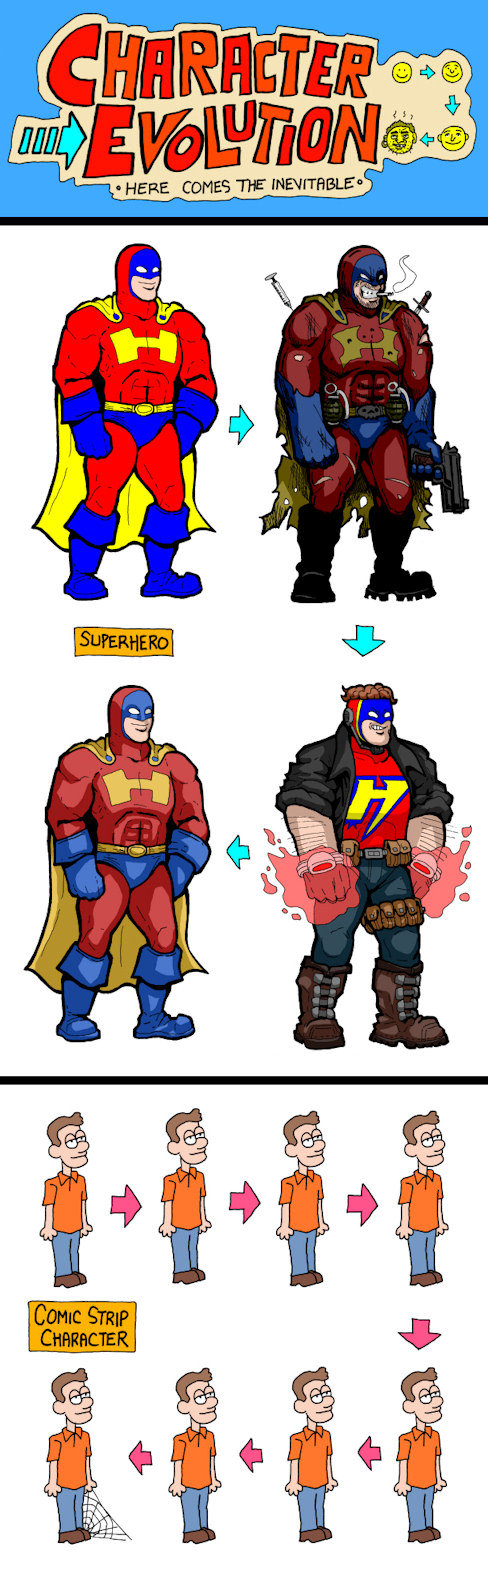 The Evolution of Fictional Characters by Medium [COMIC]